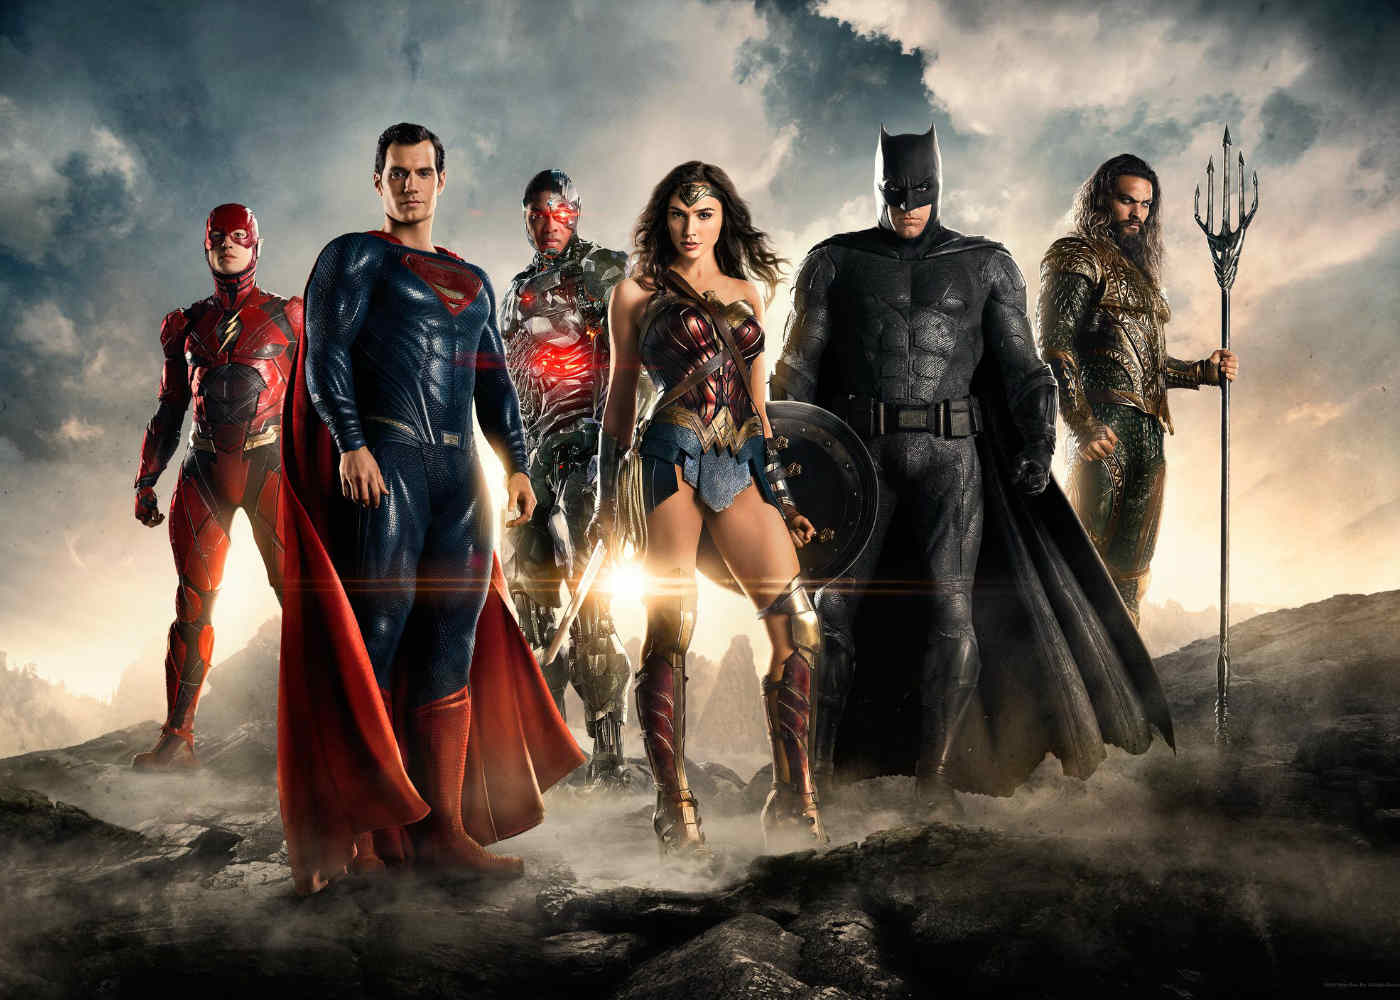 #ReleasetheSnyderCut Gets More than 100k Tweets on Anniversary of Justice League